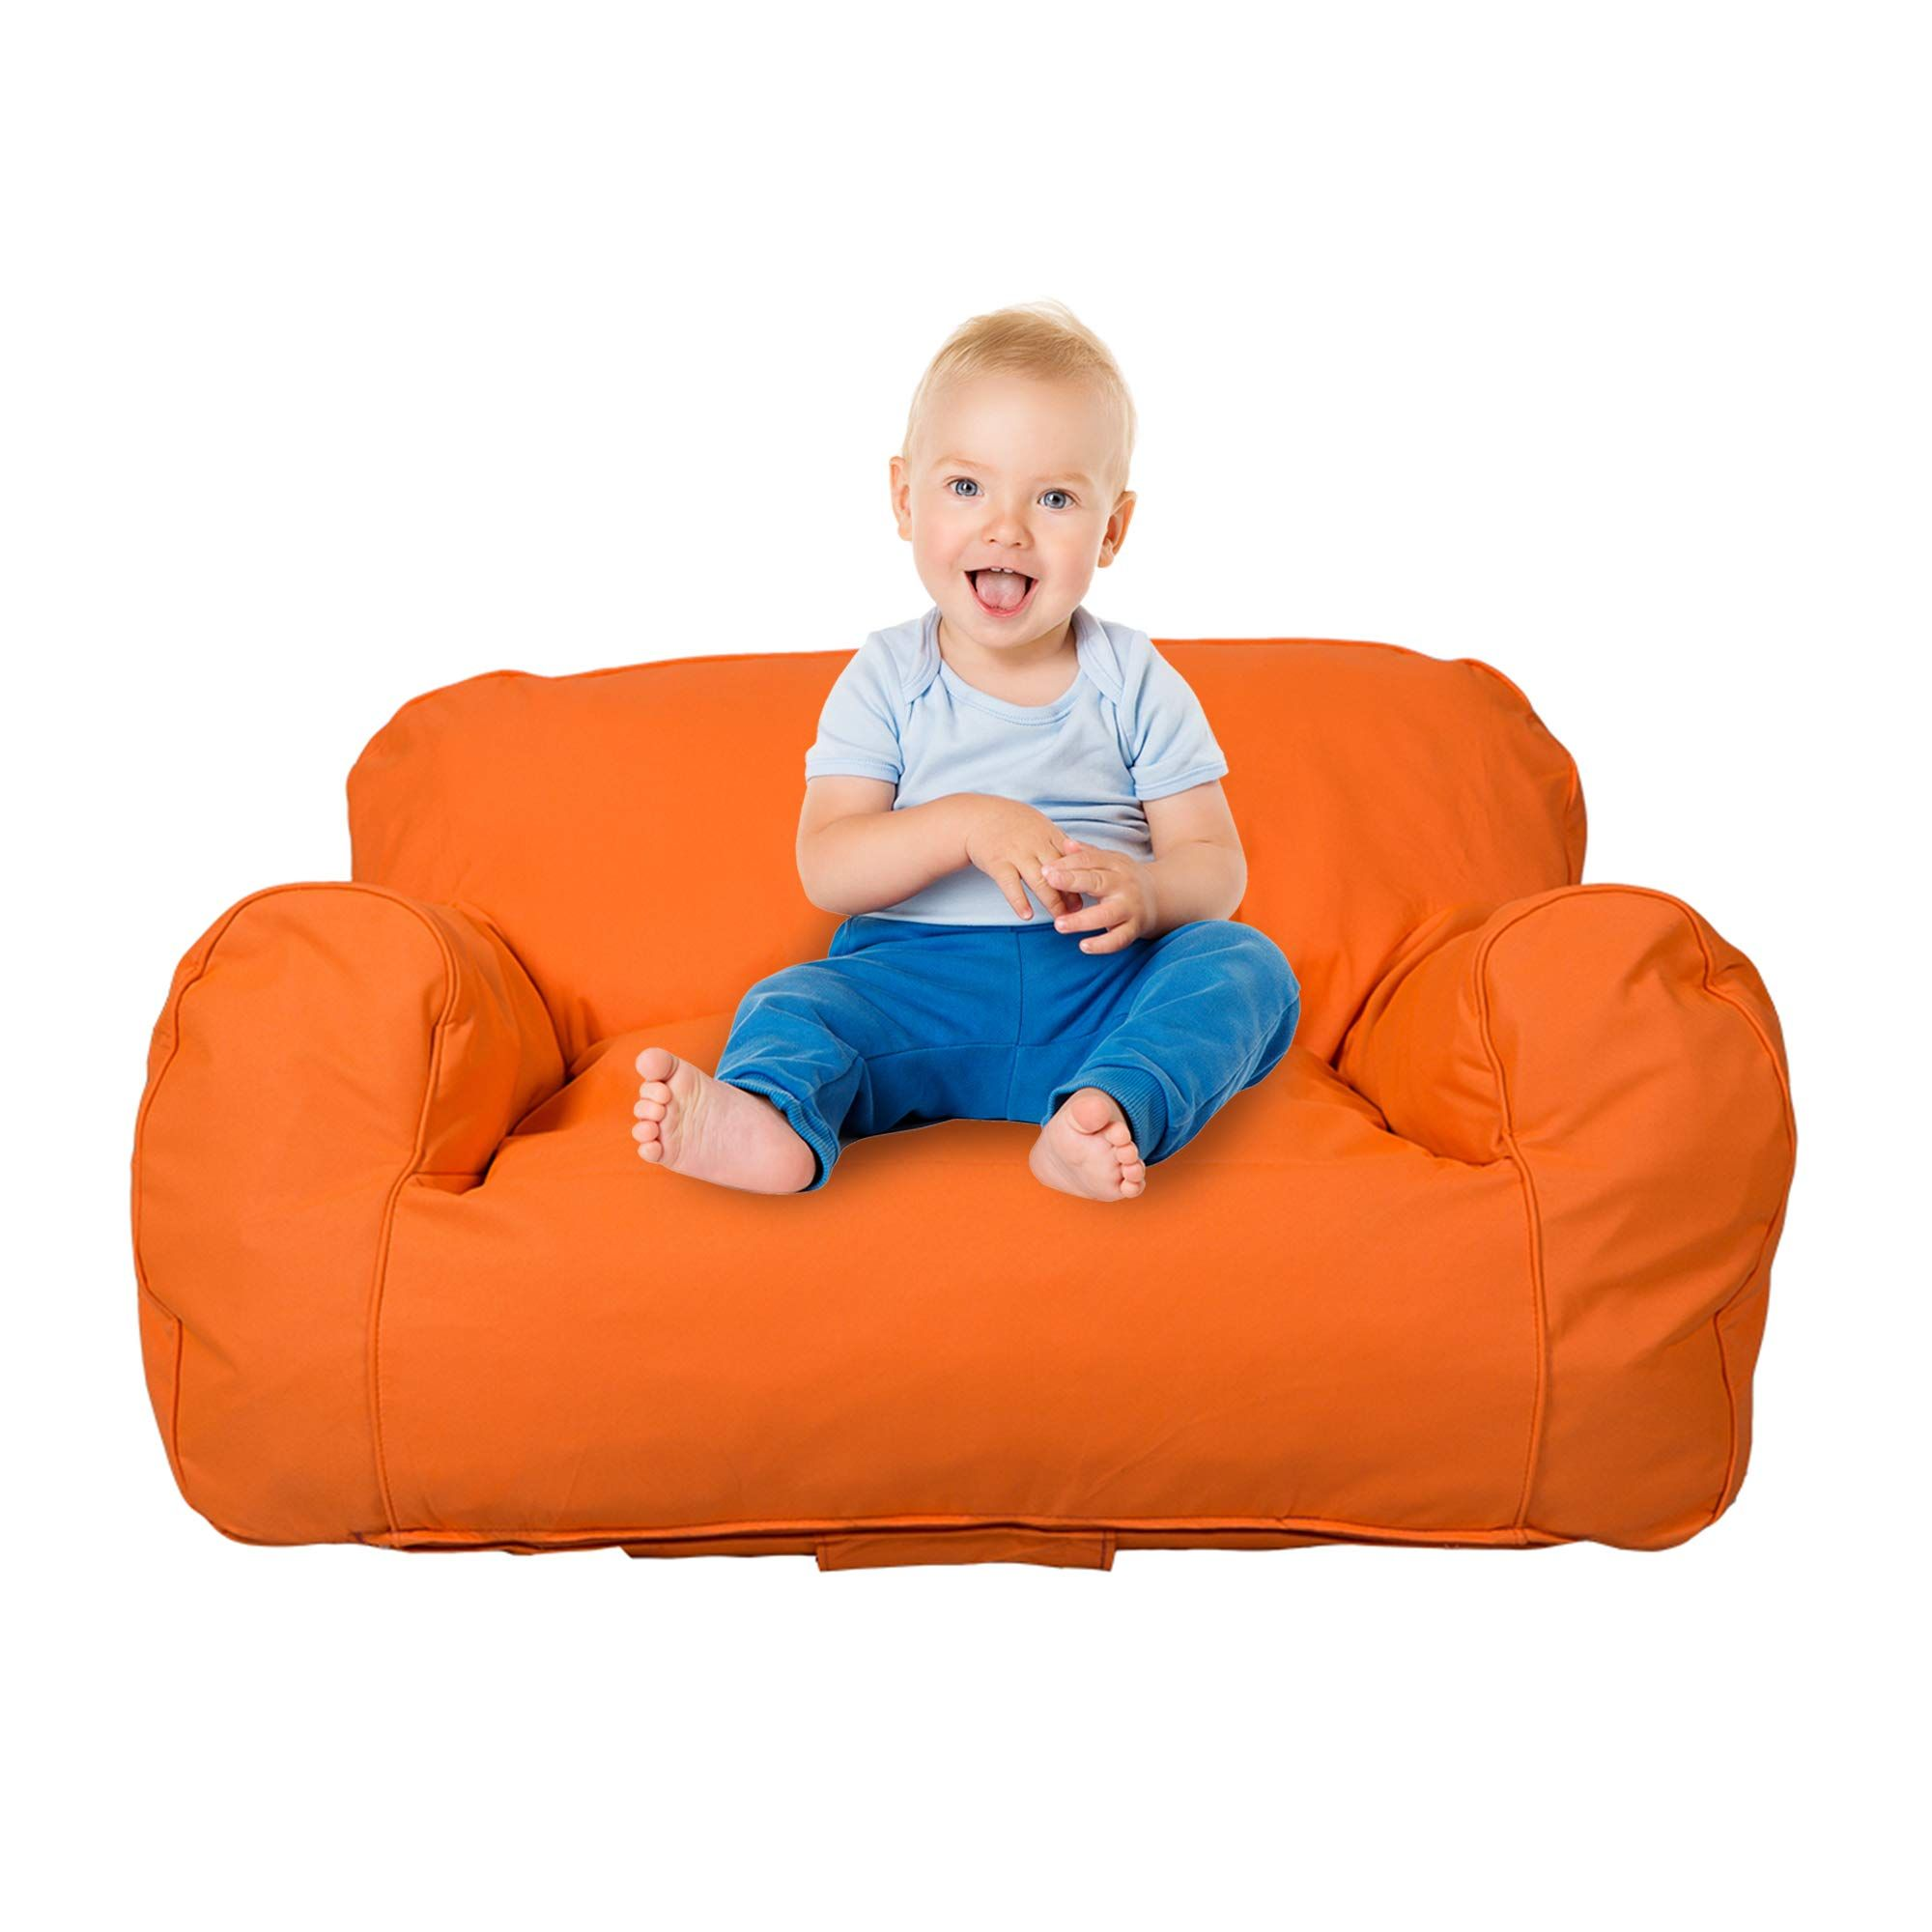 Livebest Soft Selfrebound Sponge Double Kids Lounger Sofa Bean Bag Chair Seat Available For Boys And Girls Ora Bean Bag Chair Bean Bag Chair Kids Bean Bag Sofa